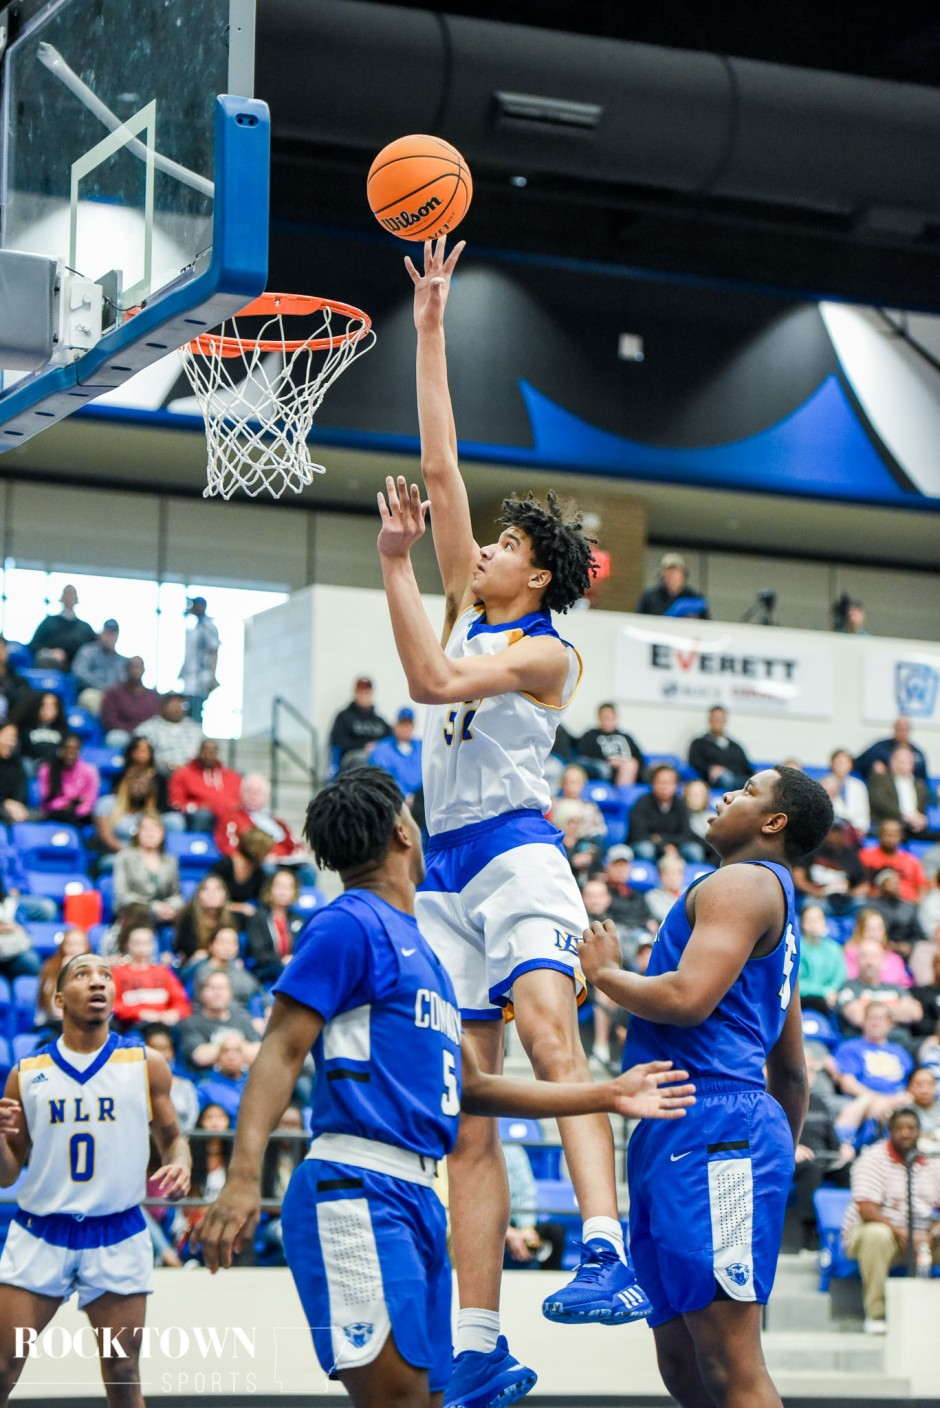 NLR_conway_bball_2020(i)-34